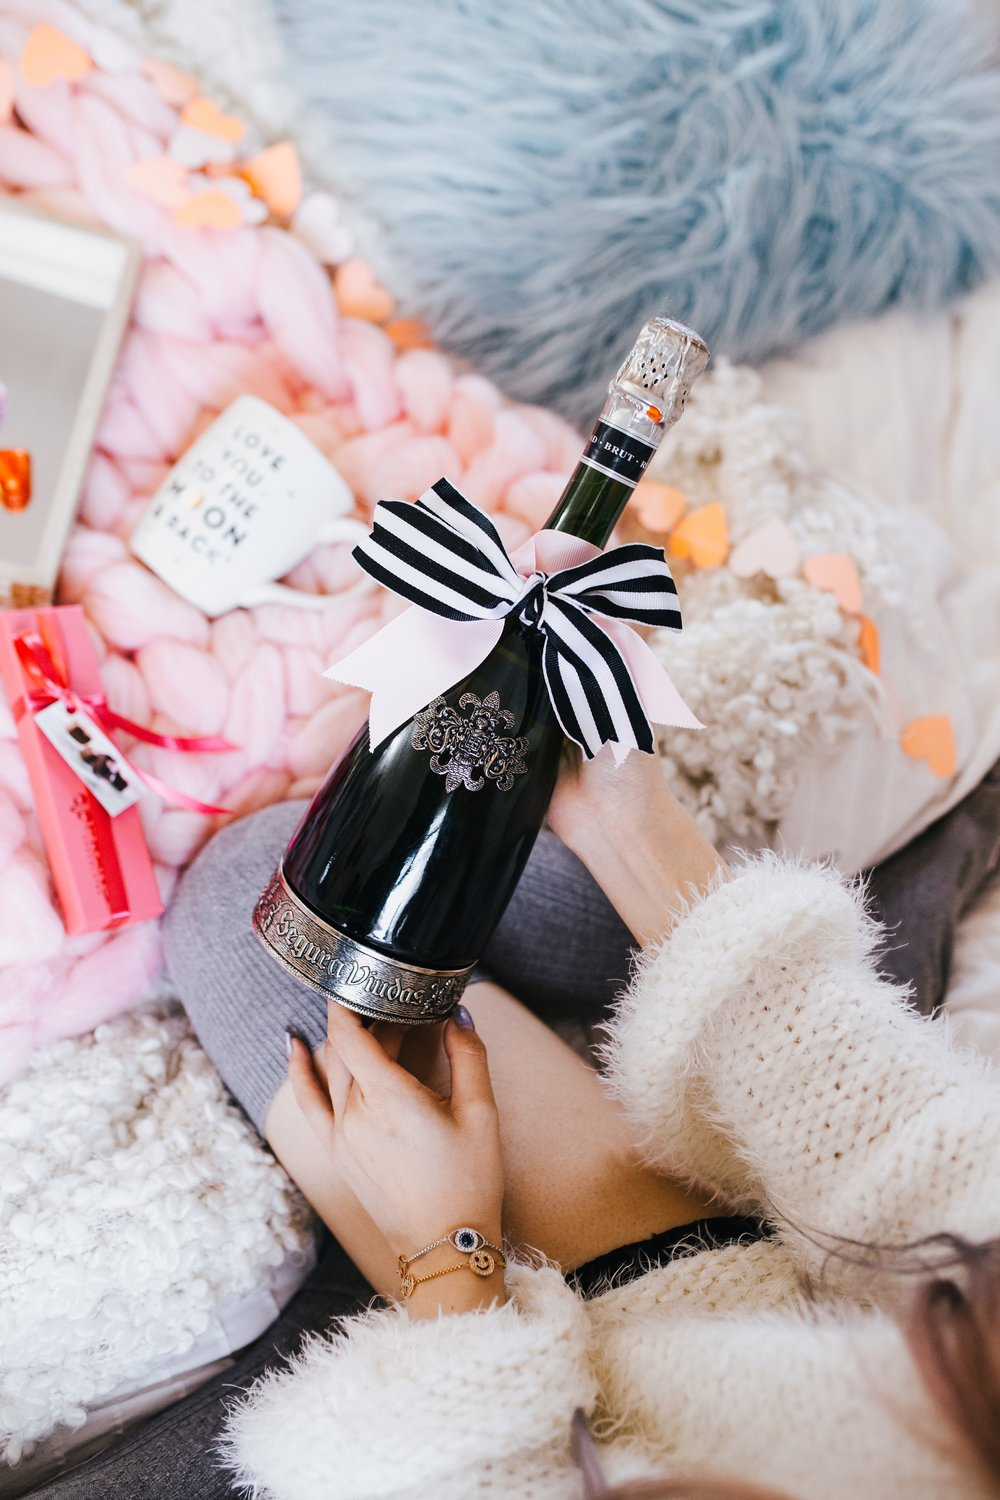 Segura Viudas Heredad Brut Reserva-I love you to the moon & back-heart chocolate-heart mini garland-Aika Yokoyama-AIkas Love Closet-heart ballons-special gift-galantine's day-valentine's day-sparkling wine-small room-chunky blanket-pink hair-fur pillow-chunky throw-japanese-lifestyle and style blogger-inspiration-seattle 22